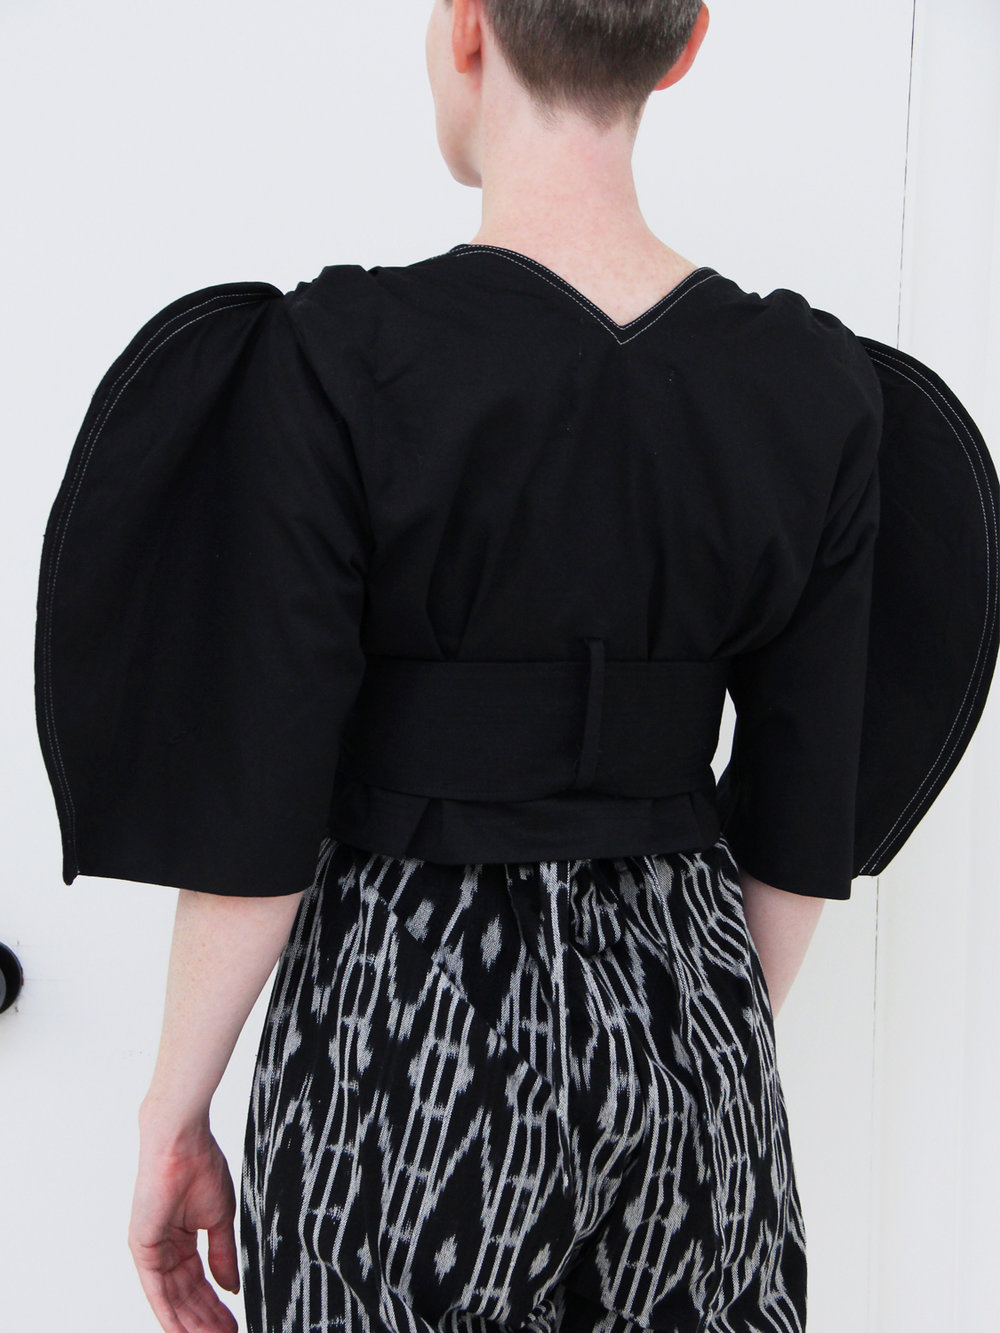 be30098f0f758 House of Sunny Full Moon Crop Top - Serif Black — 100 Year Party